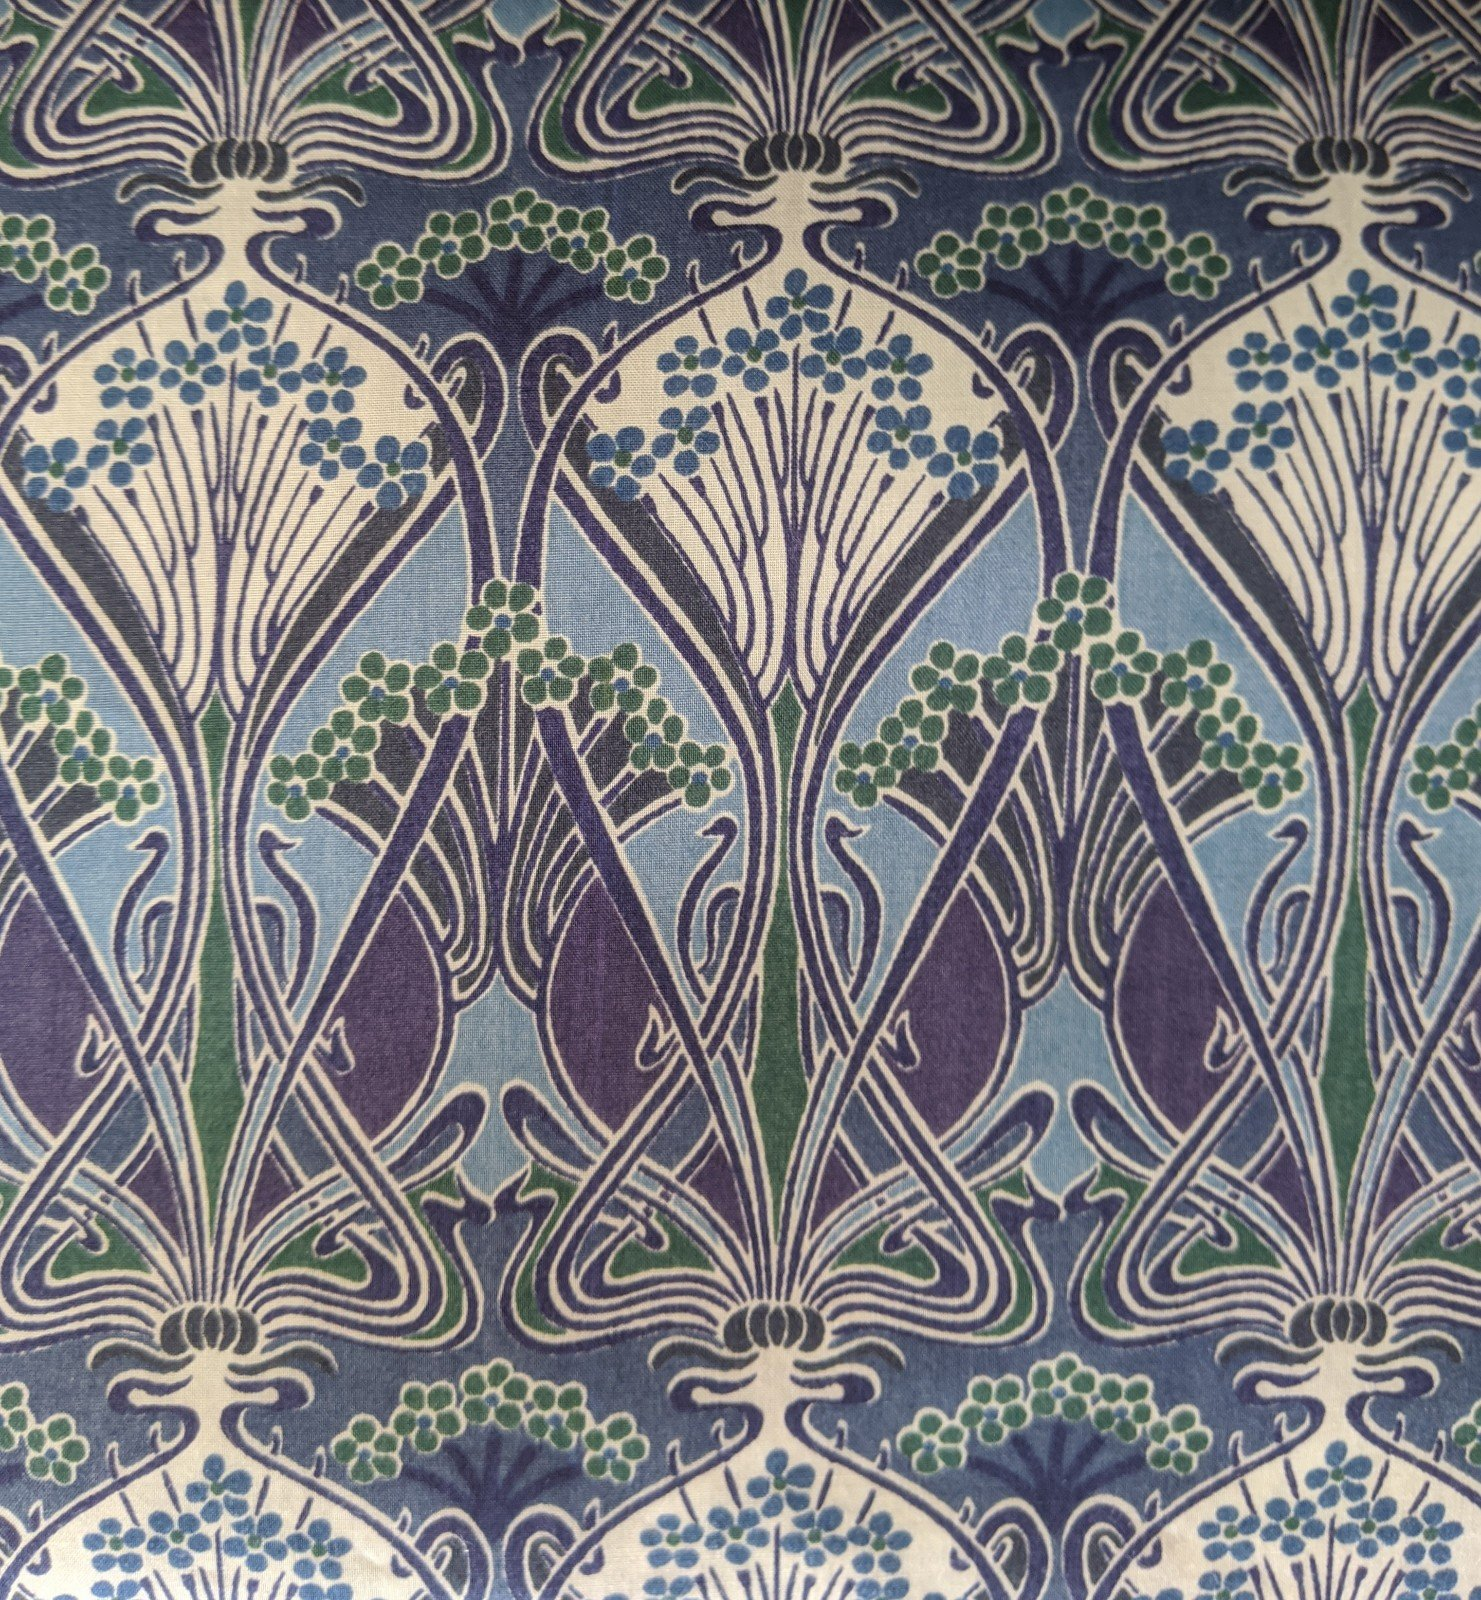 Liberty of London Cotton Lawn - Art Deco Trees